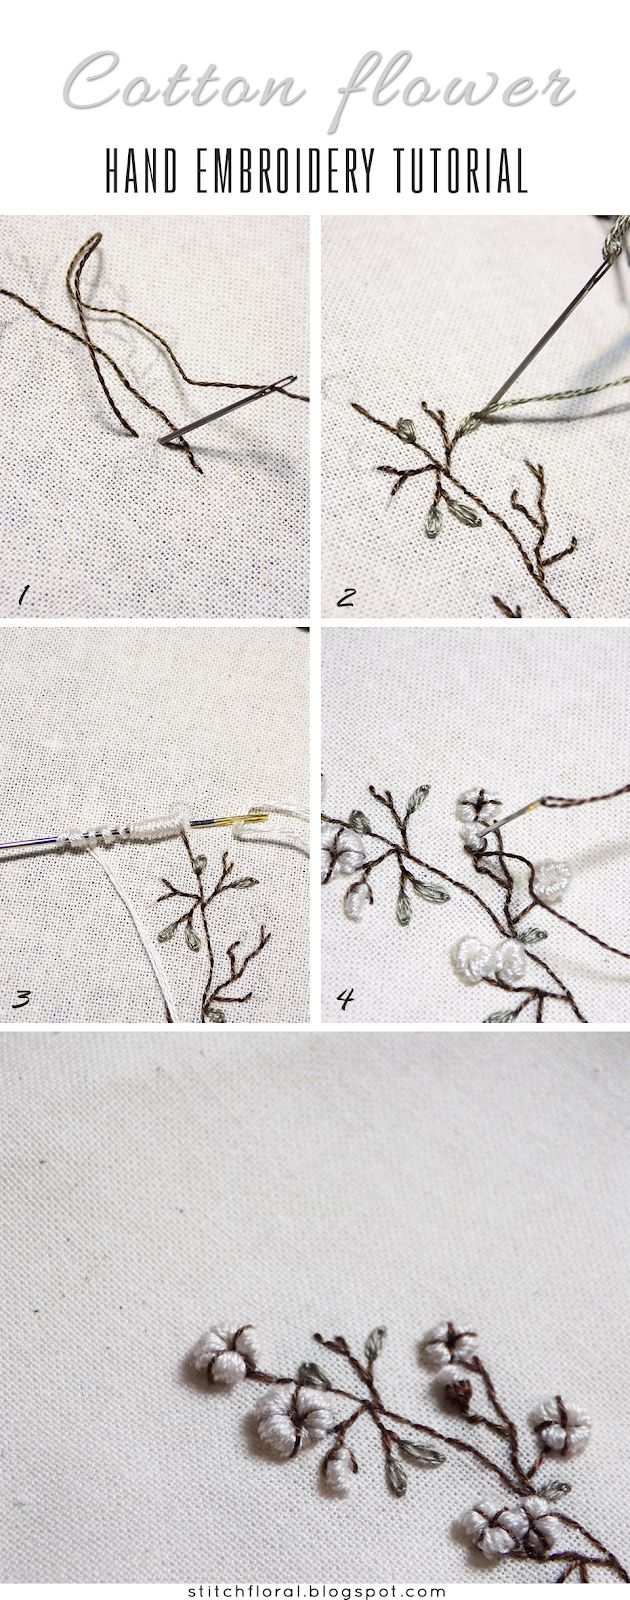 Cotton flower hand embroidery: freebie and tutorial #handembroidery #stitching #needlework #embroidery #cotton #tutorial #botanical